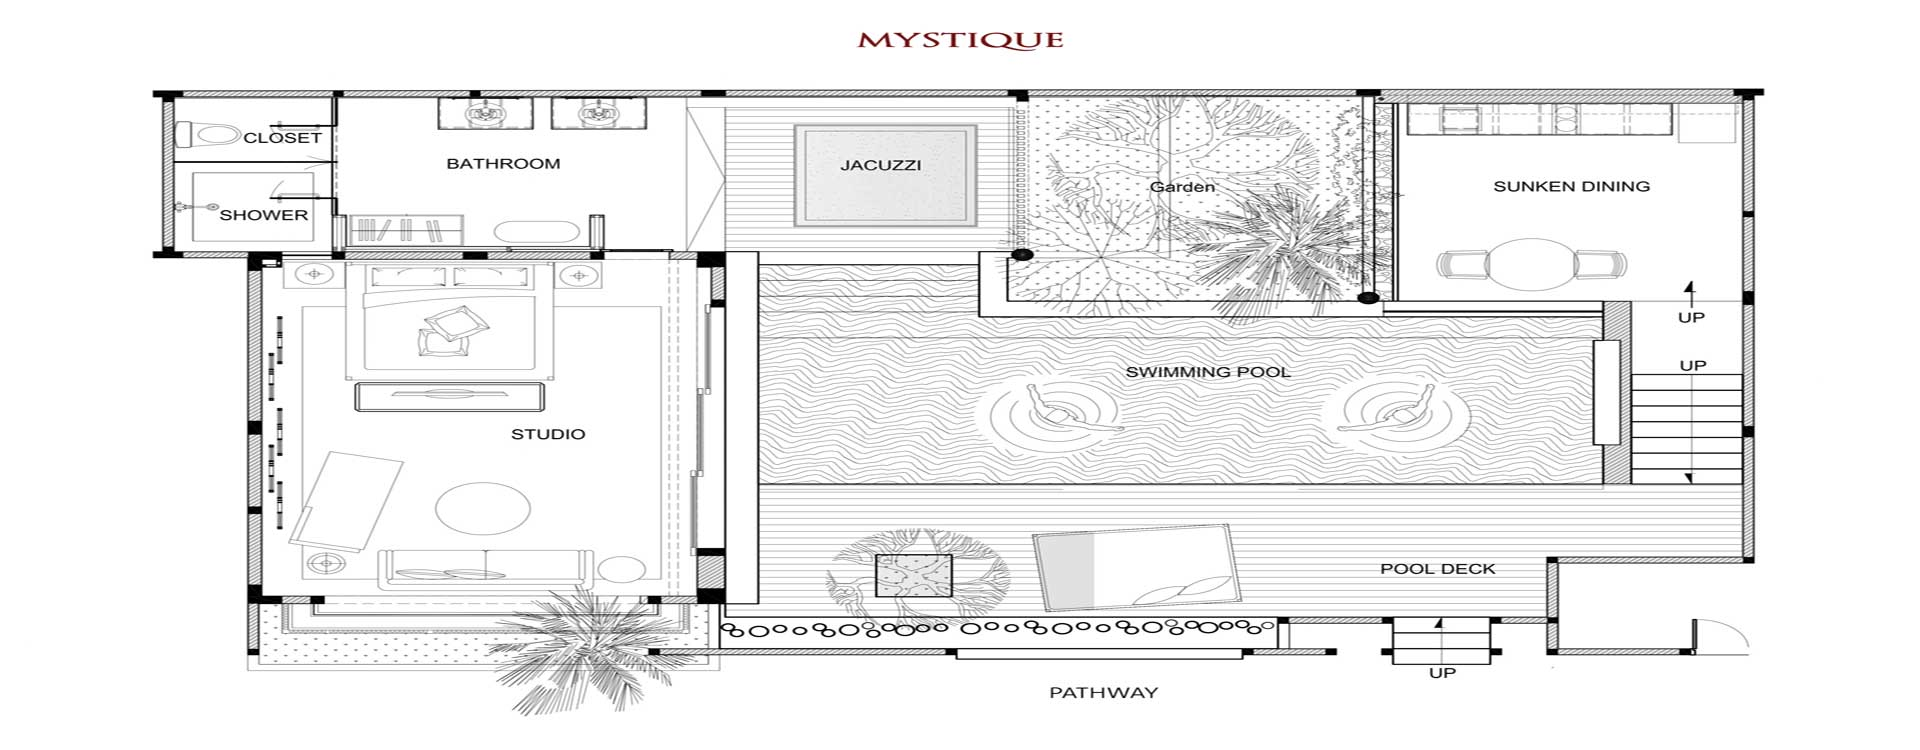 Mystique Layout